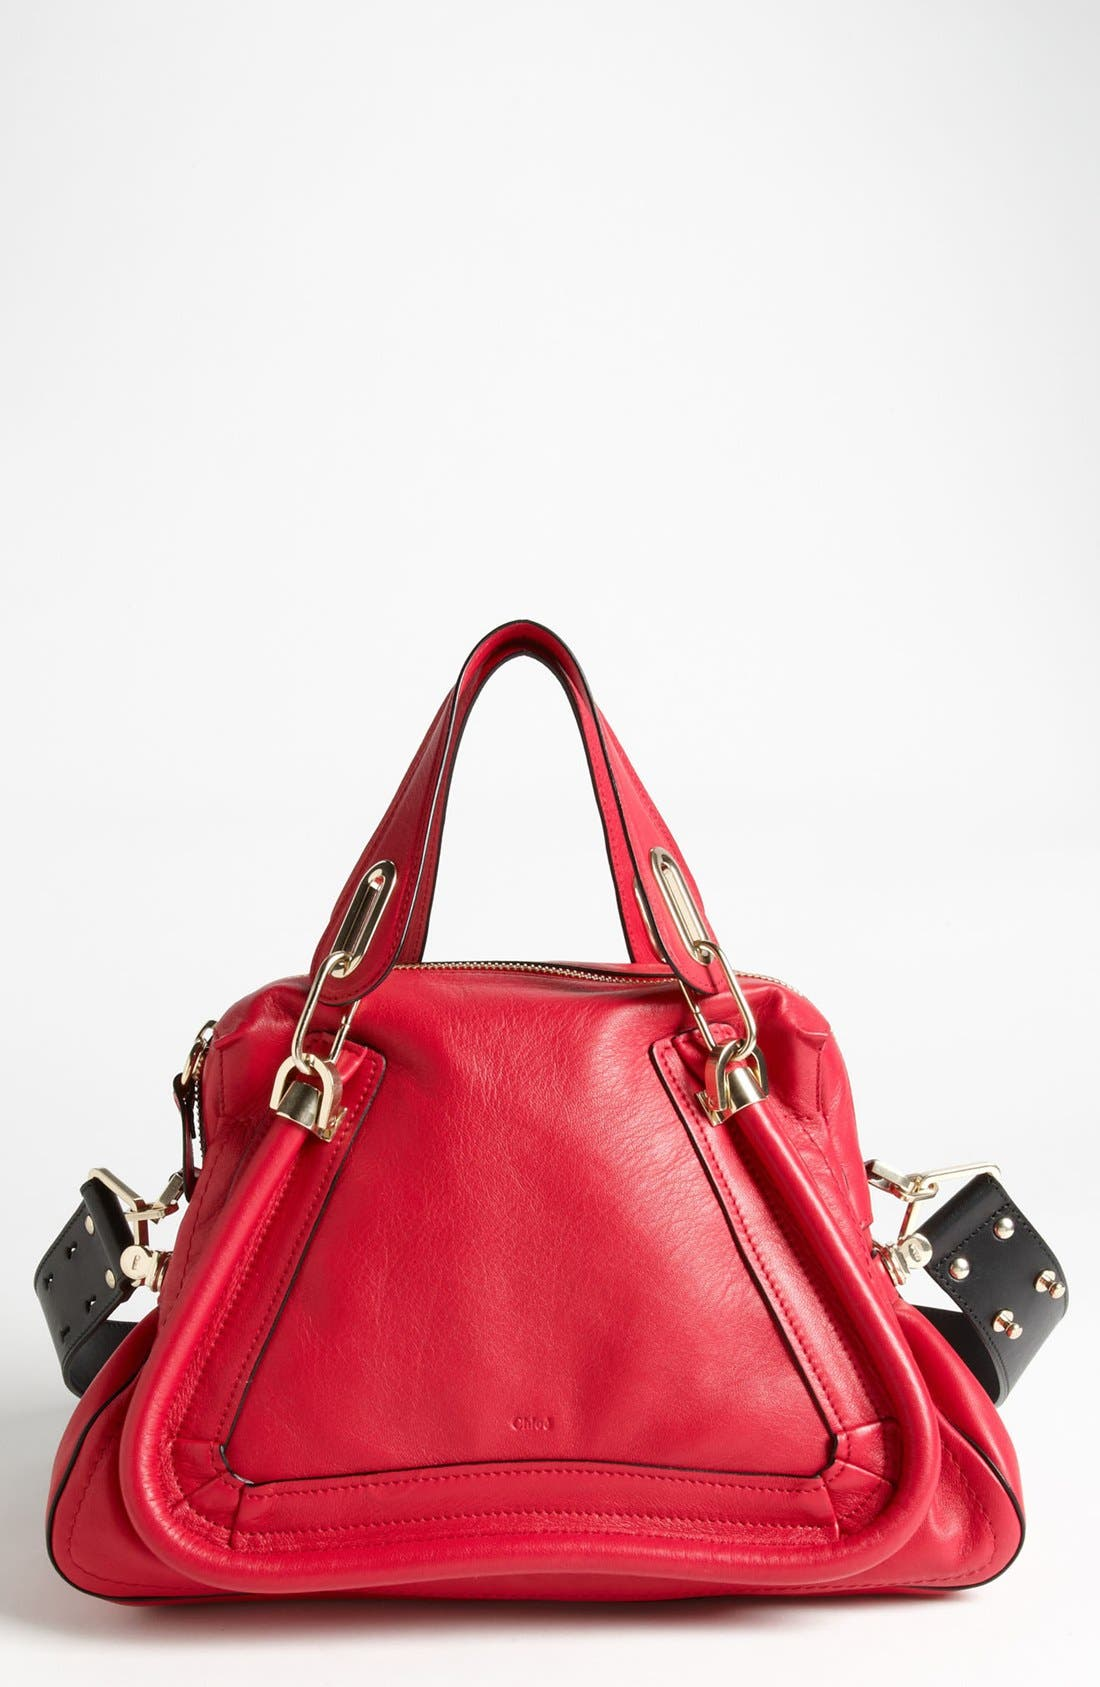 Alternate Image 1 Selected - Chloé 'Paraty Military' Leather Satchel